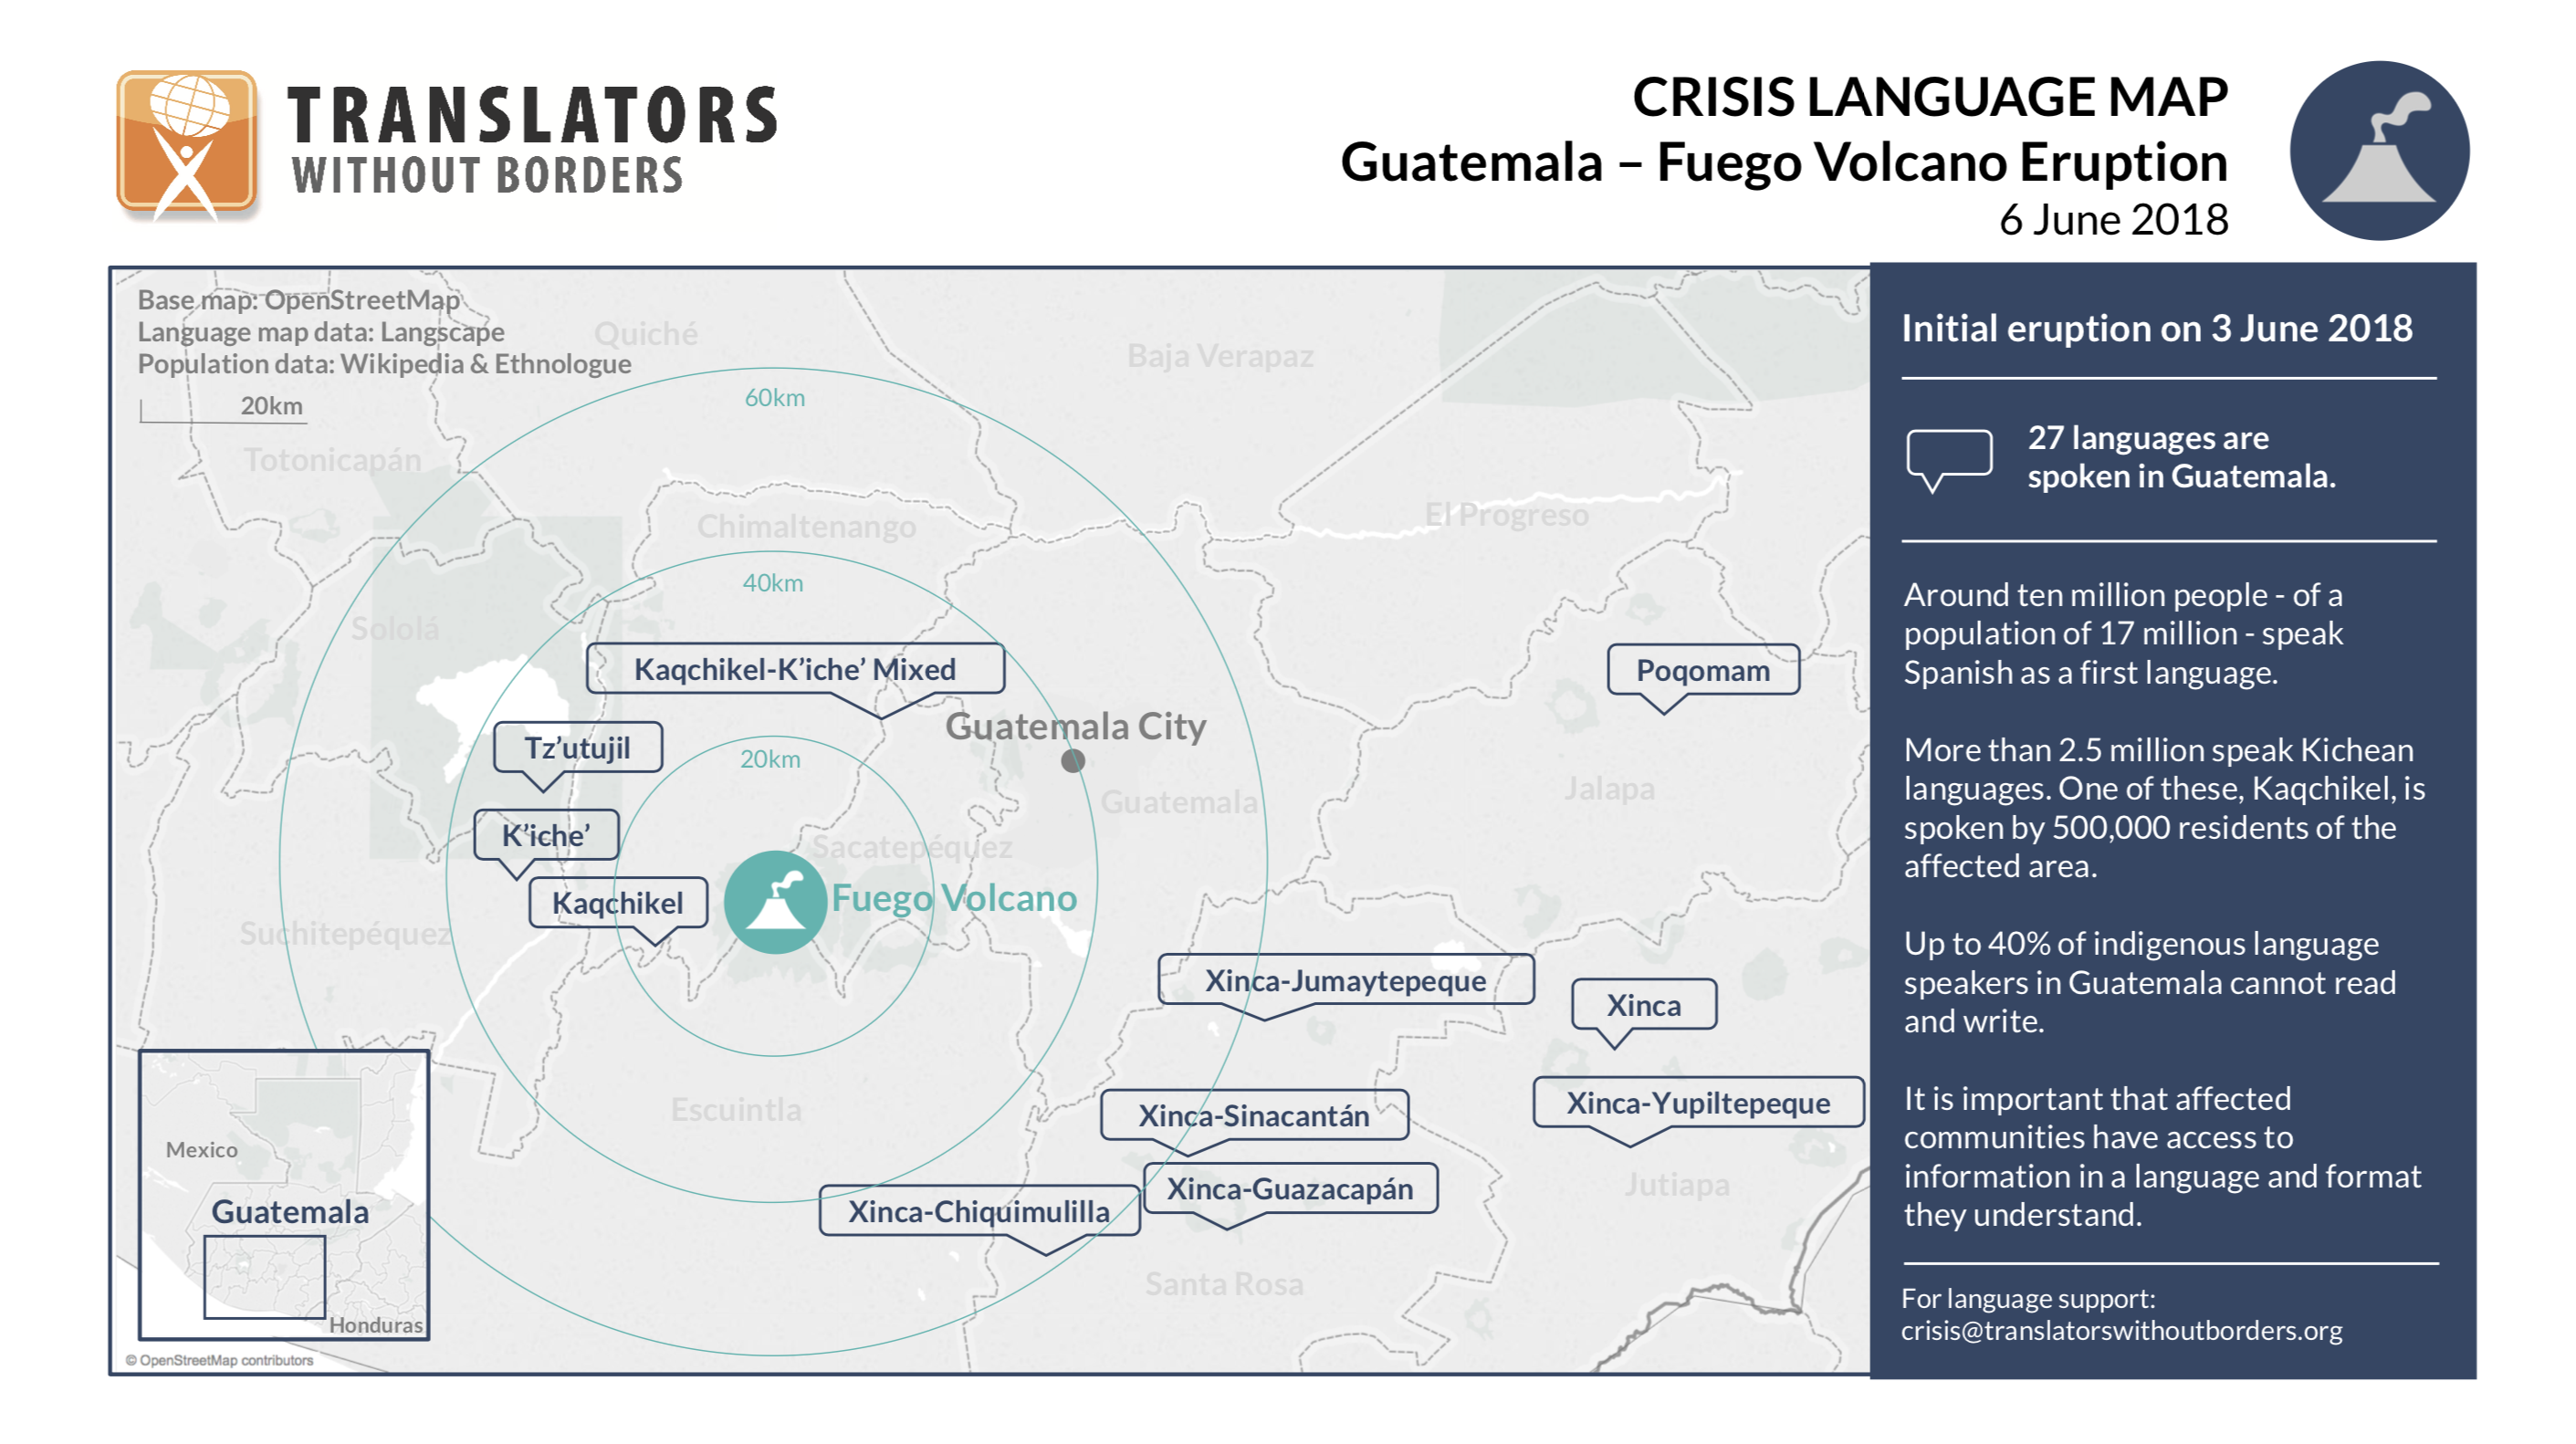 Fuego Volcano Eruption Guatemala - Crisis Language Map TWB